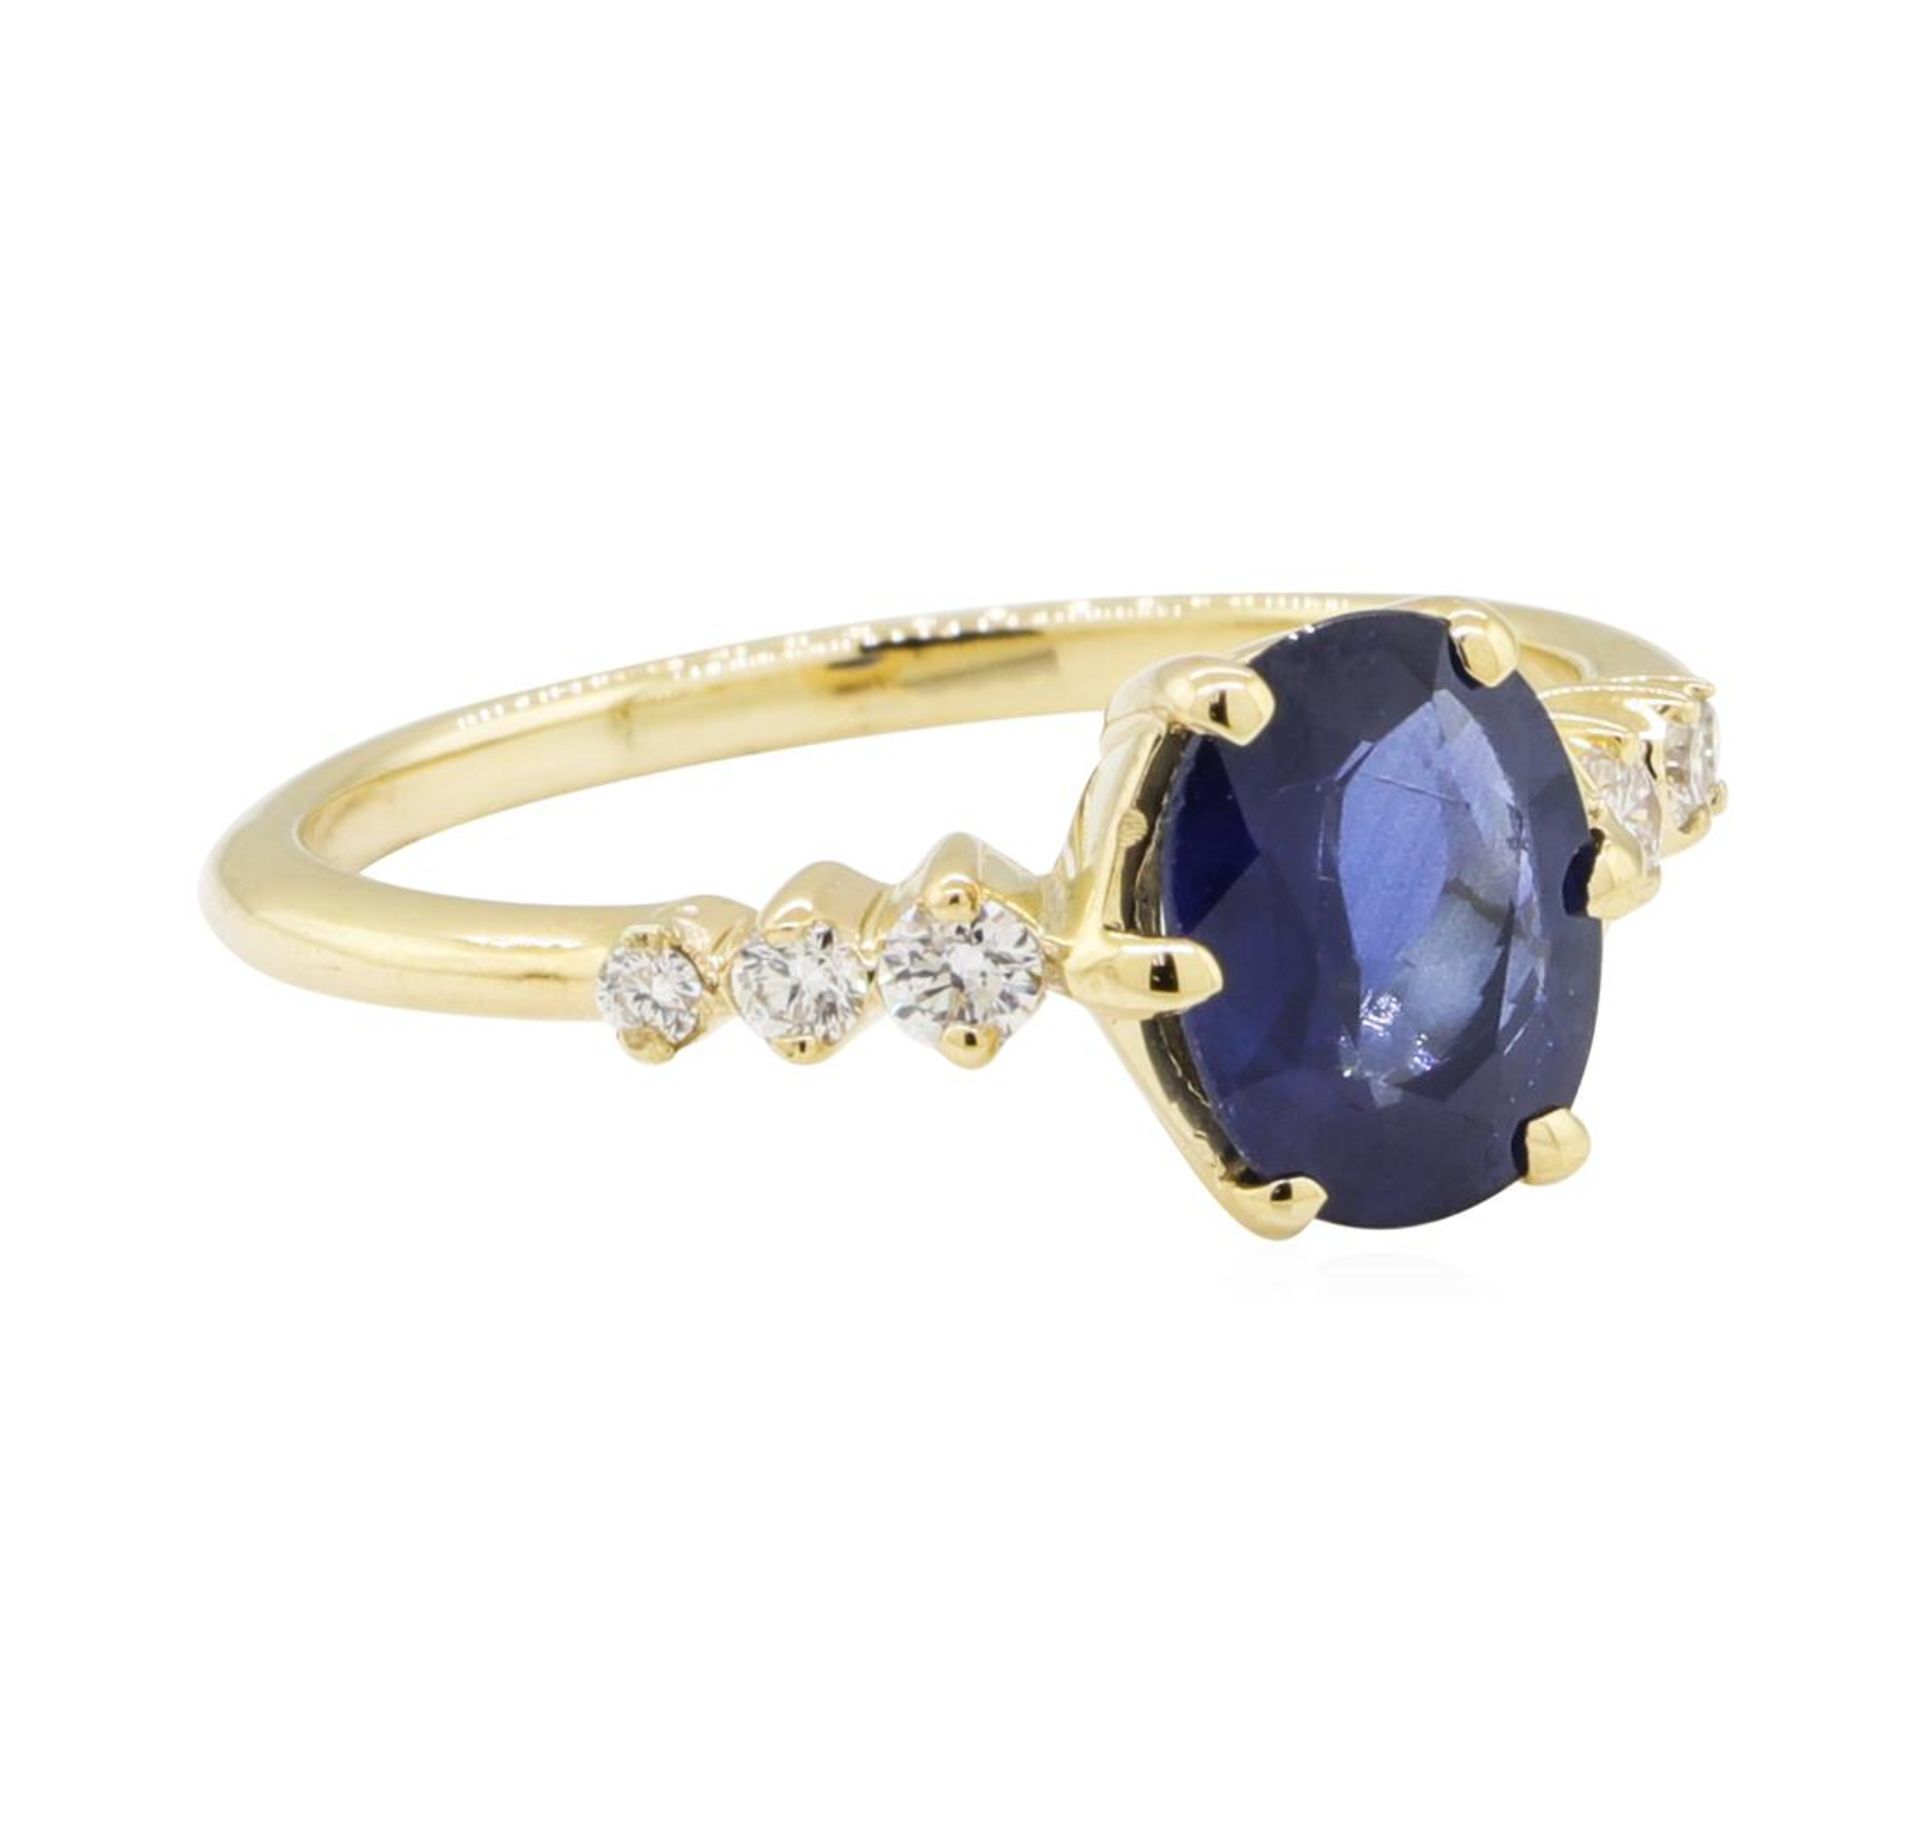 1.43ctw Sapphire and Diamond Ring - 14KT Yellow Gold